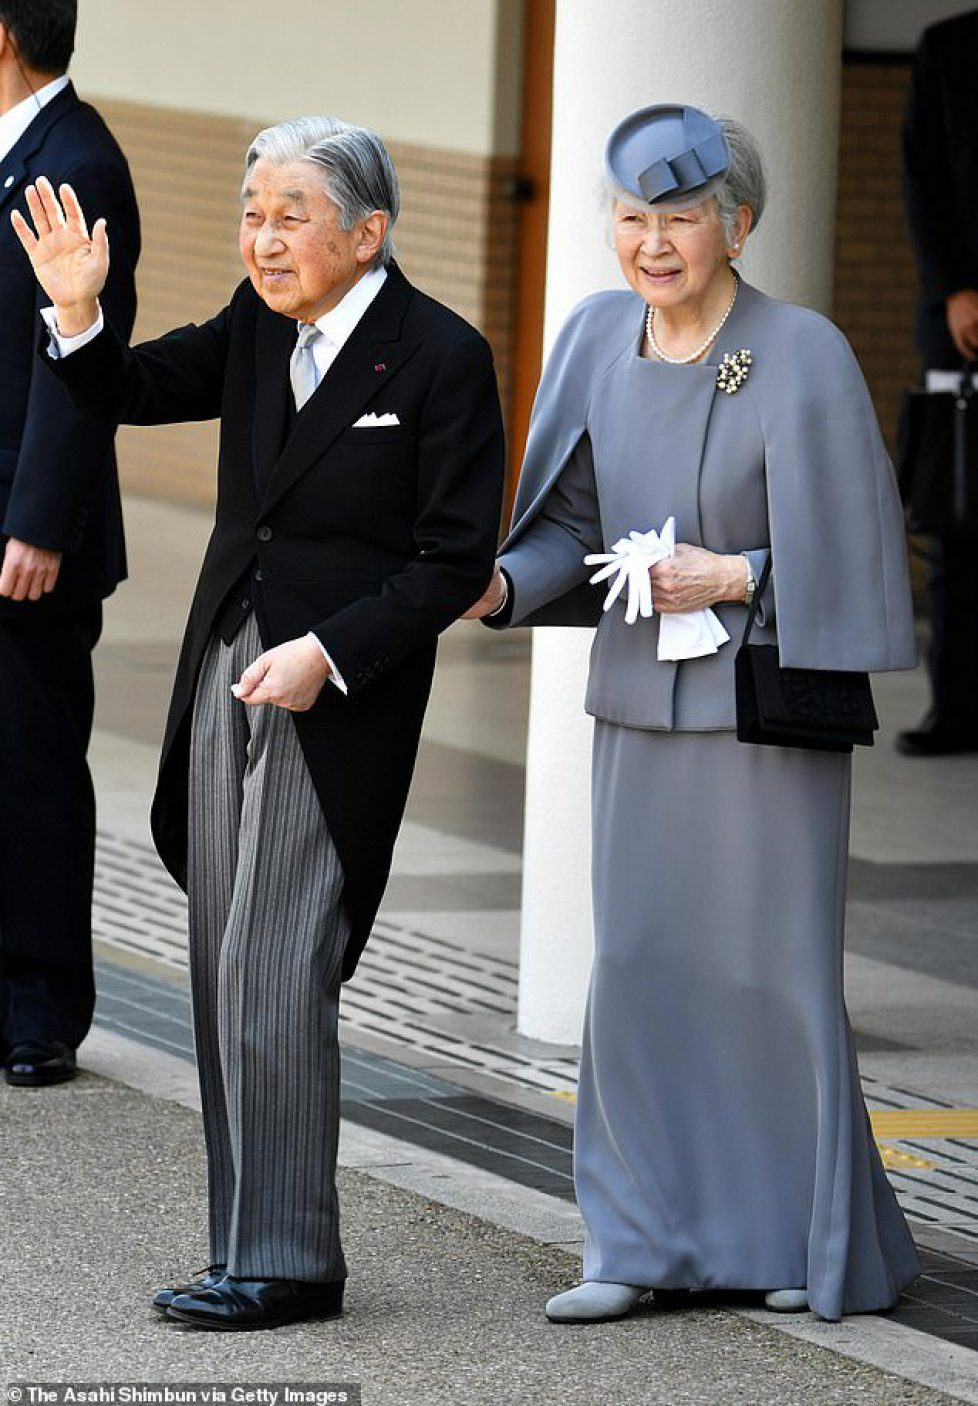 11510334-6855079-Emperor_Akihito_and_Empress_Michiko_are_seen_on_arrival_at_Kashi-a-3_1553675099124